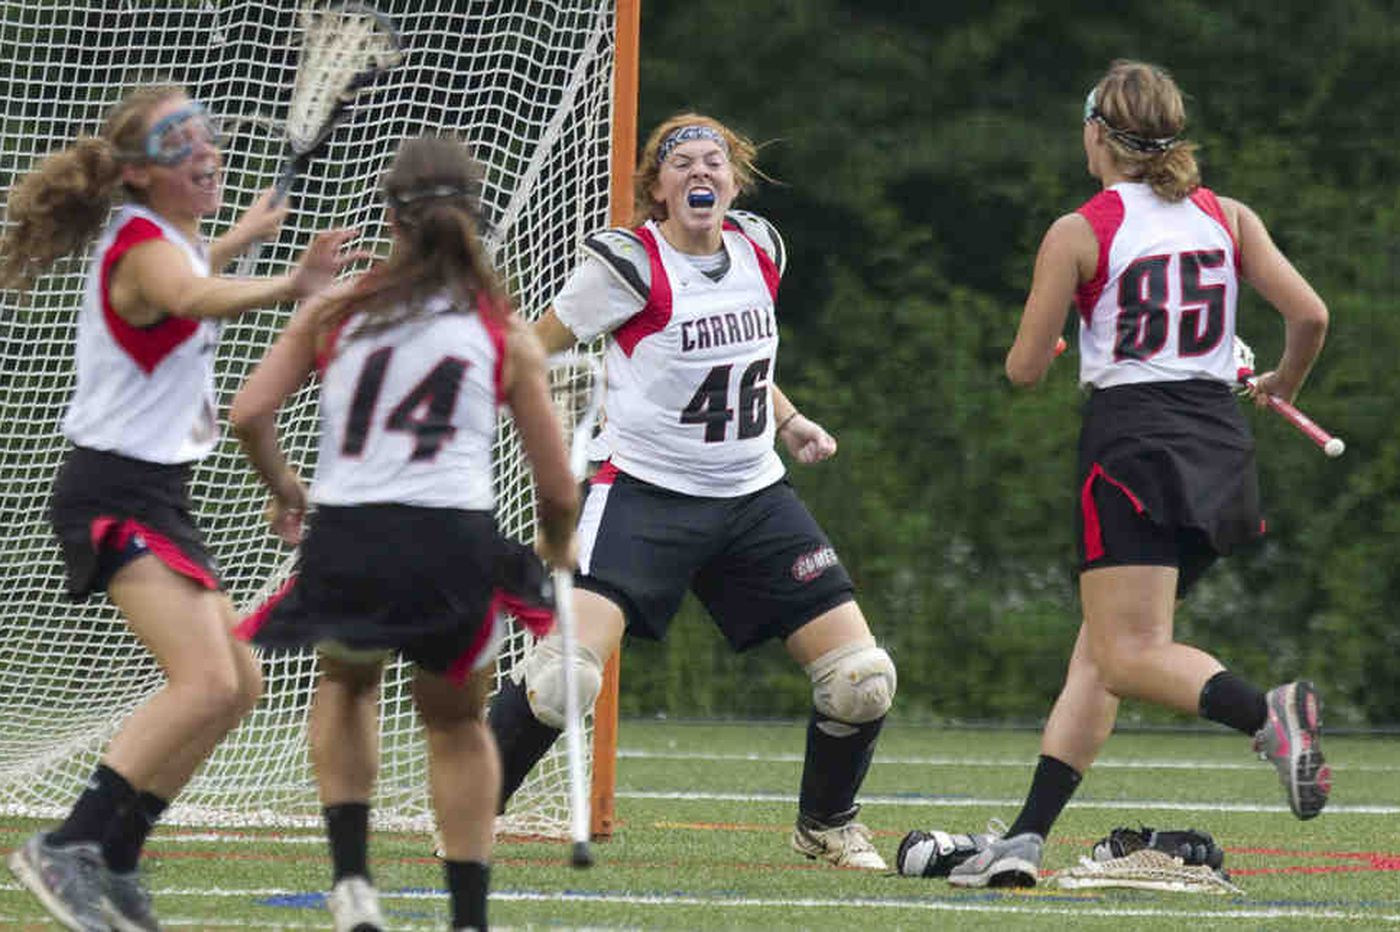 Archbishop Carroll maintains streak with girls' lacrosse win